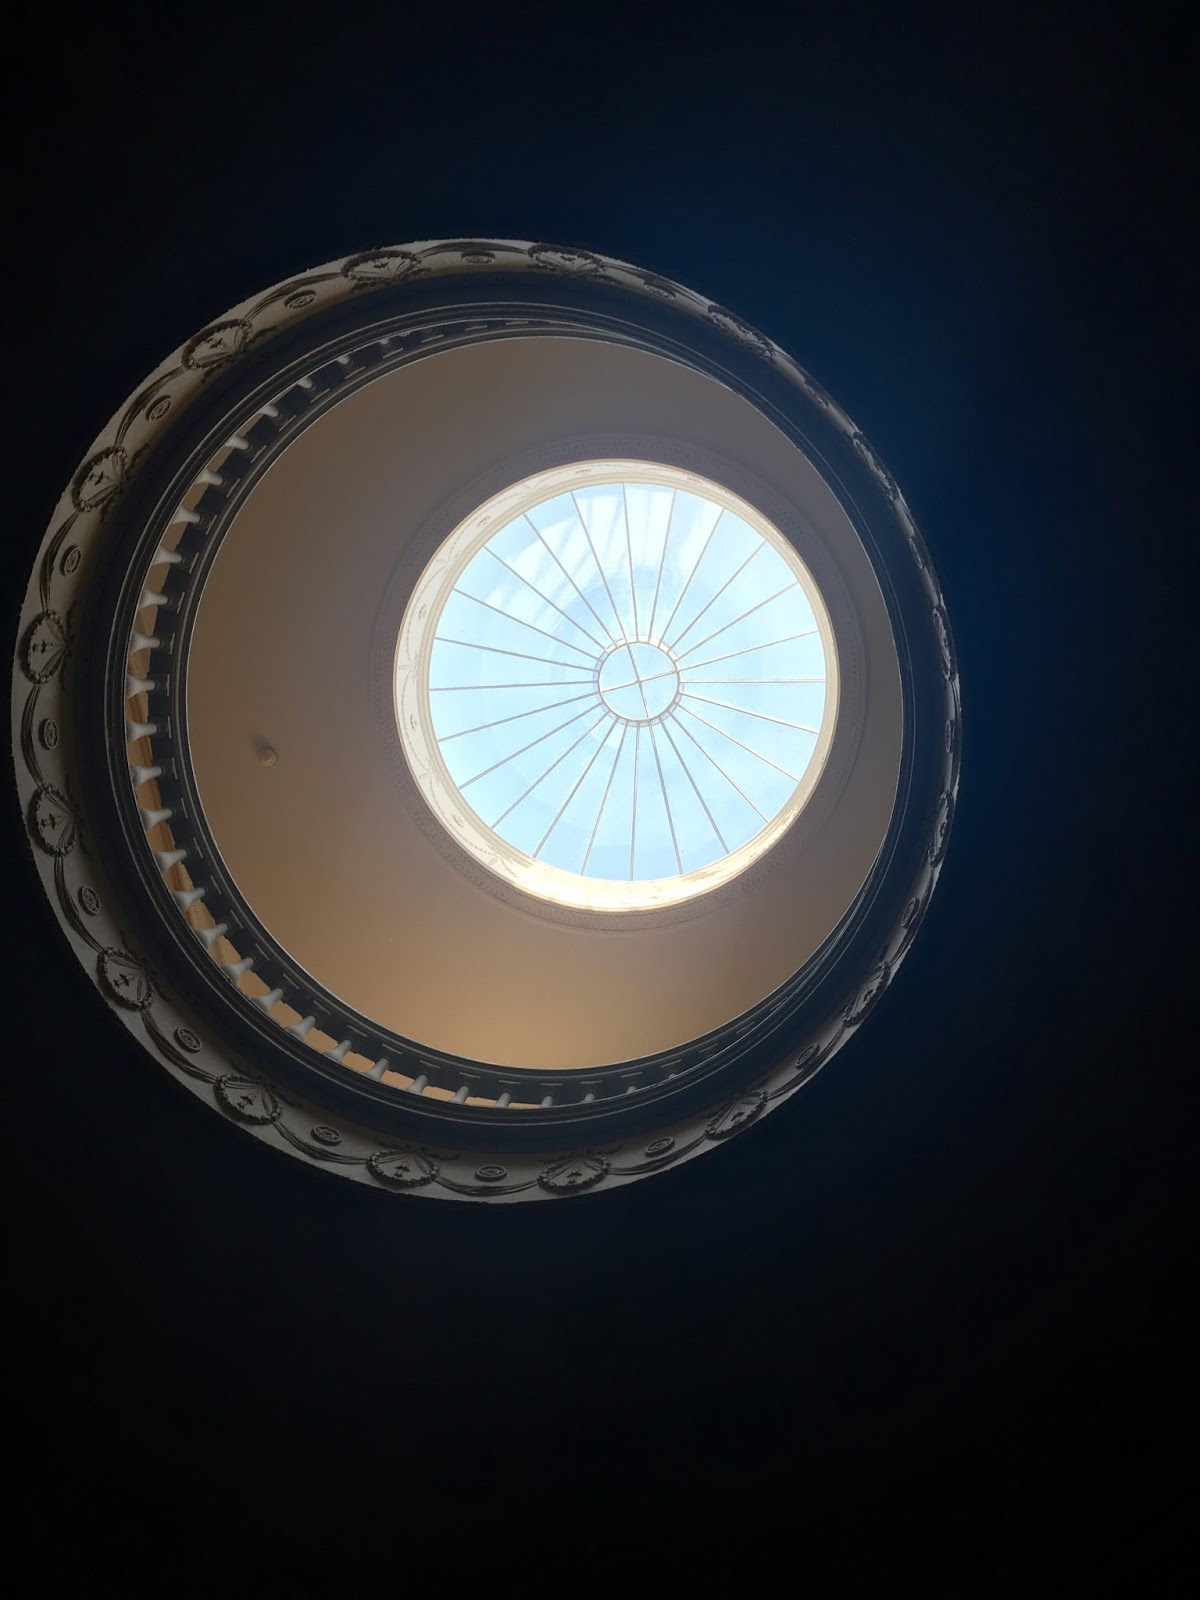 Light through a round window